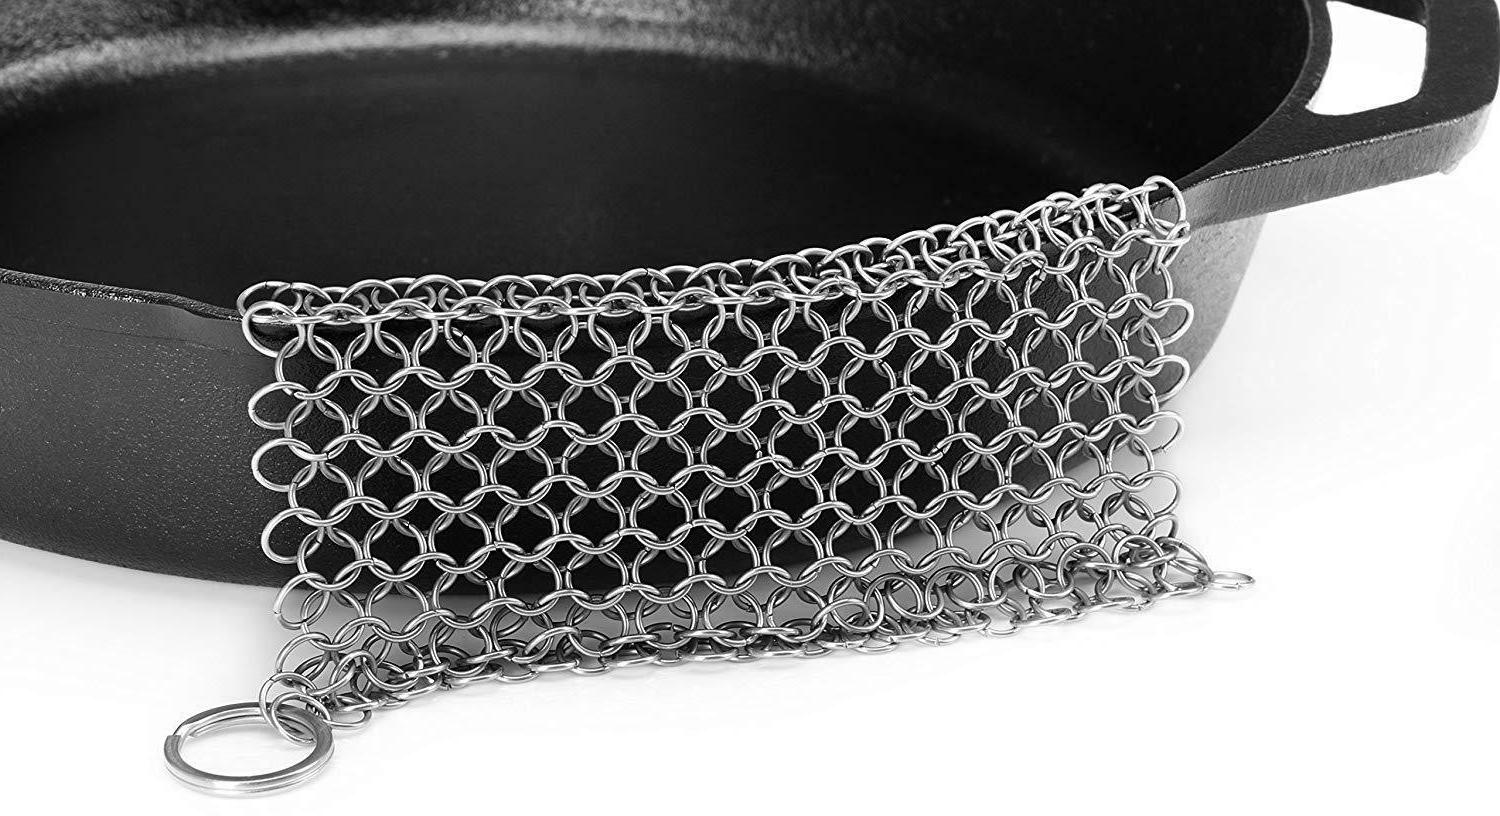 Chainmail Stainless Cast Iron Cookware Utopia